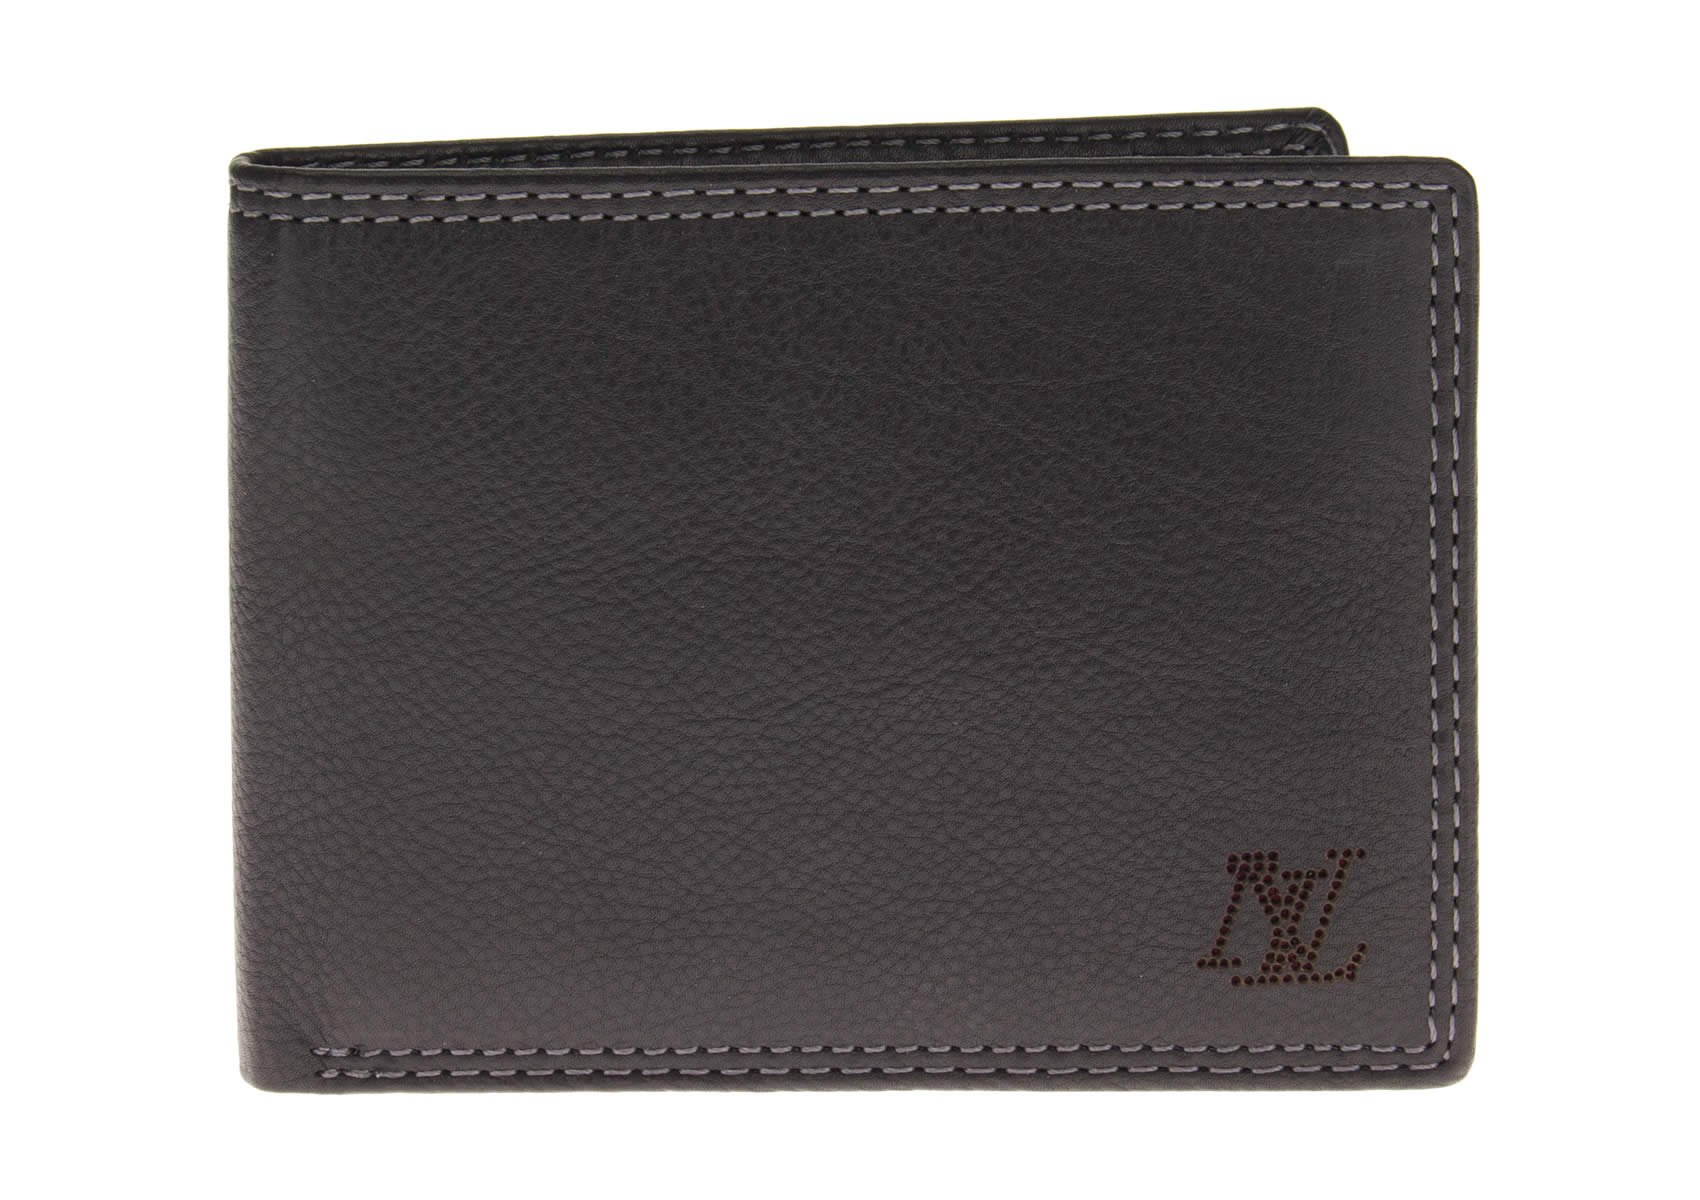 Luciano Natazzi Leather RFID Blocking Bifold Wallet Removable Double ID Holder (One Size, Black)